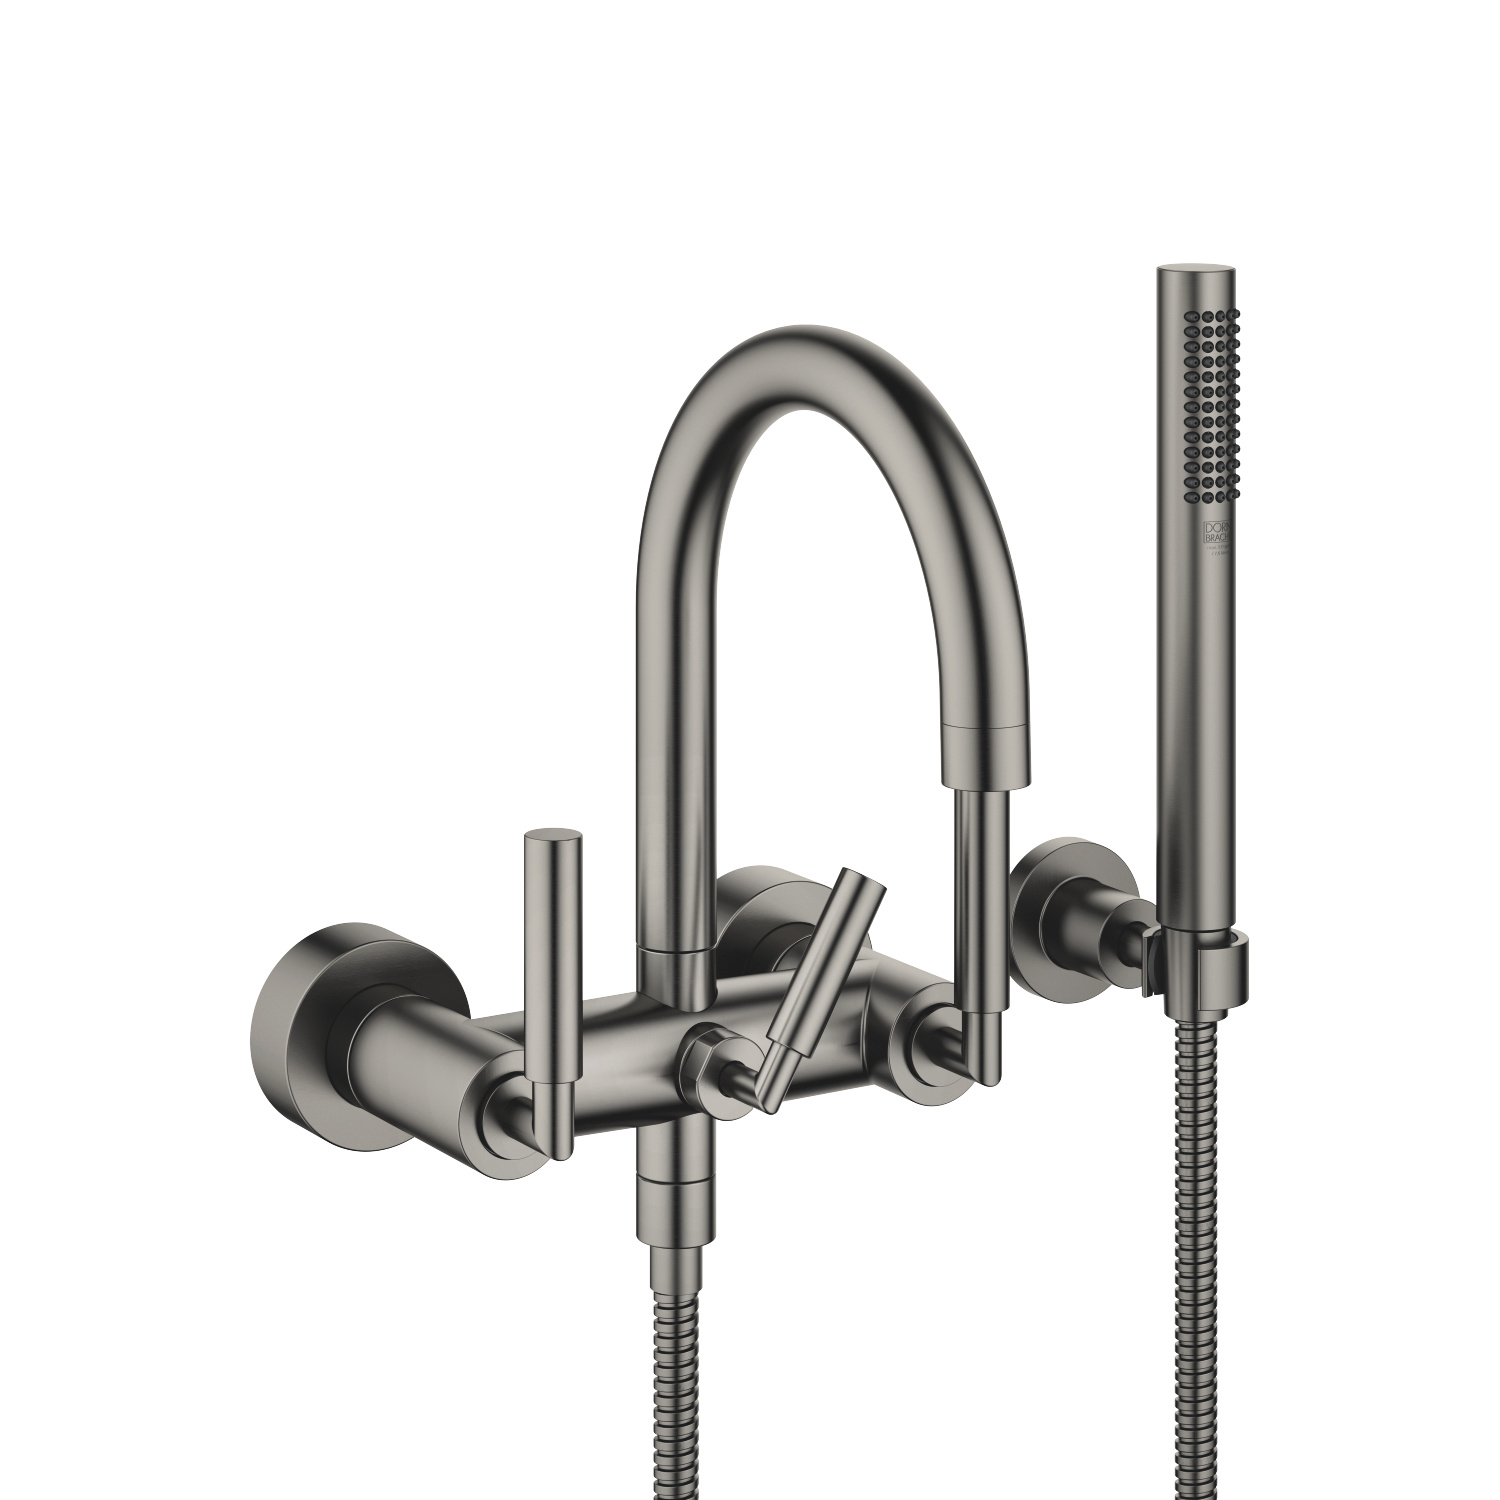 Bath mixer for wall mounting with hand shower set - Dark Platinum matt